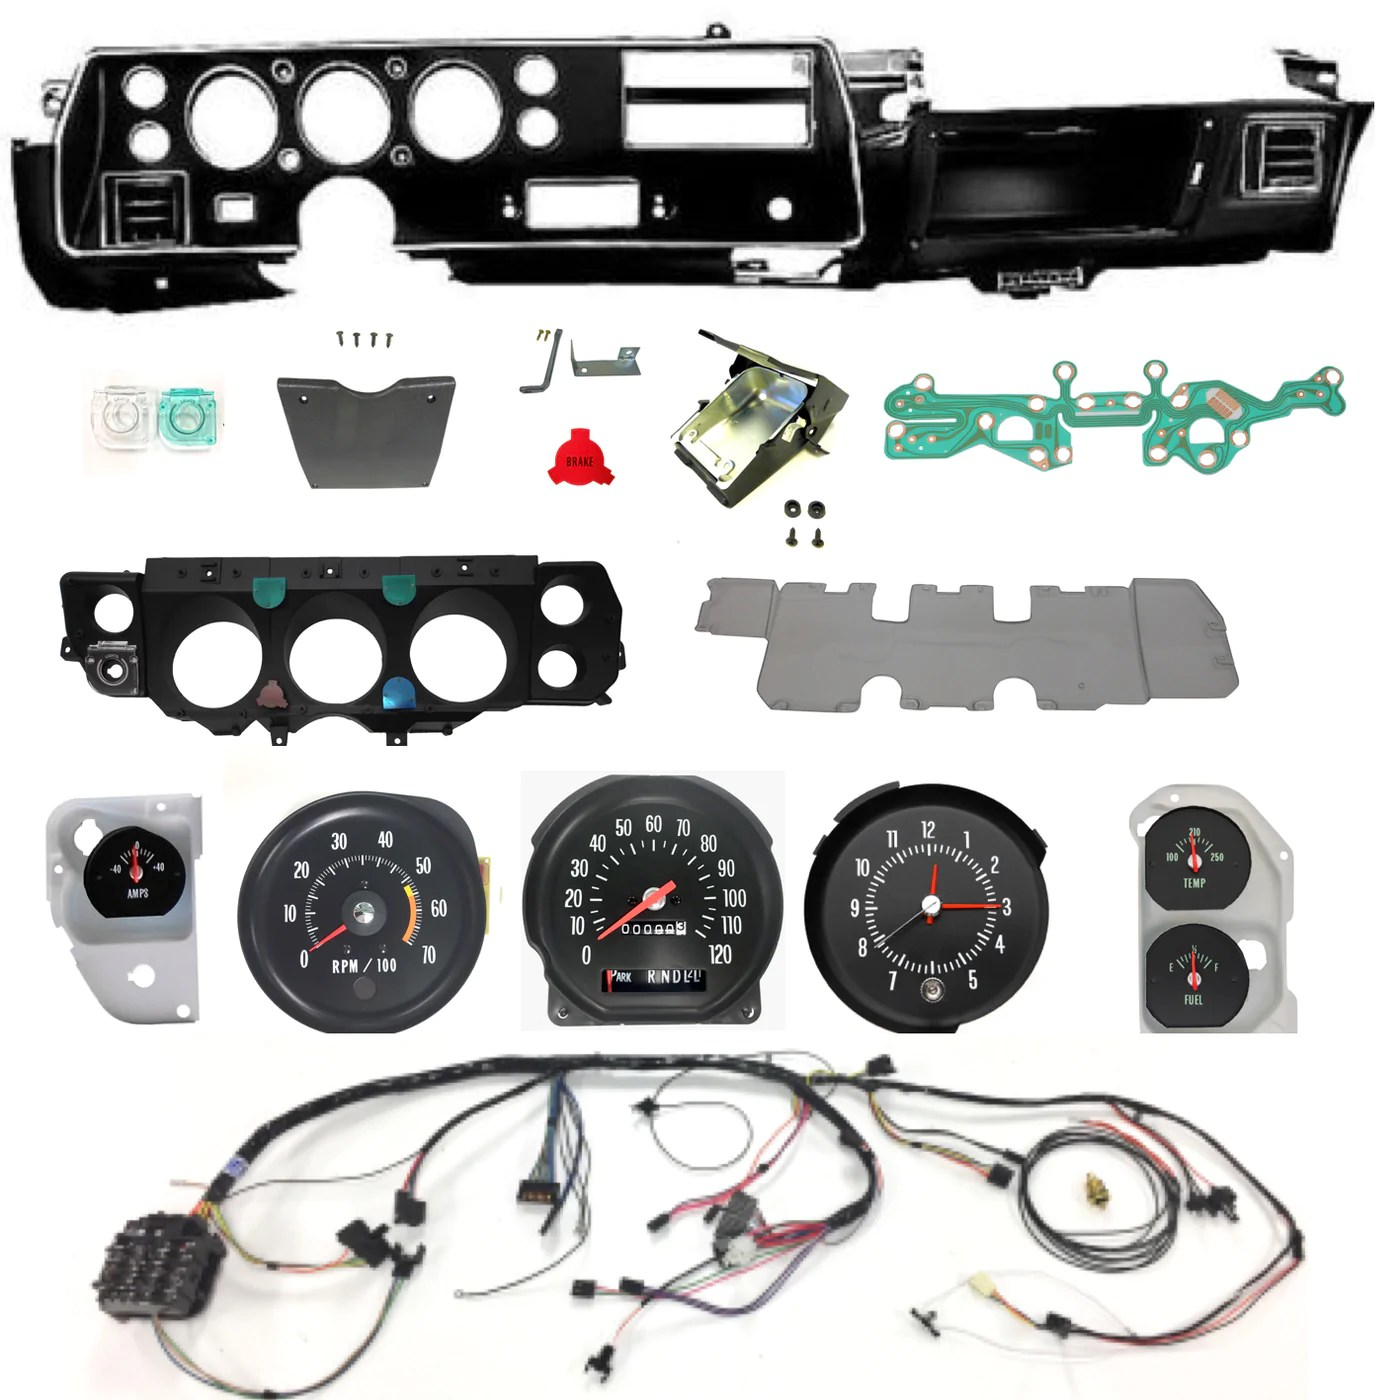 small resolution of 1971 71 chevelle ss dash conversion kit el camino column shift super chevelle dash wiring harness main for cars with factory gauges 1970